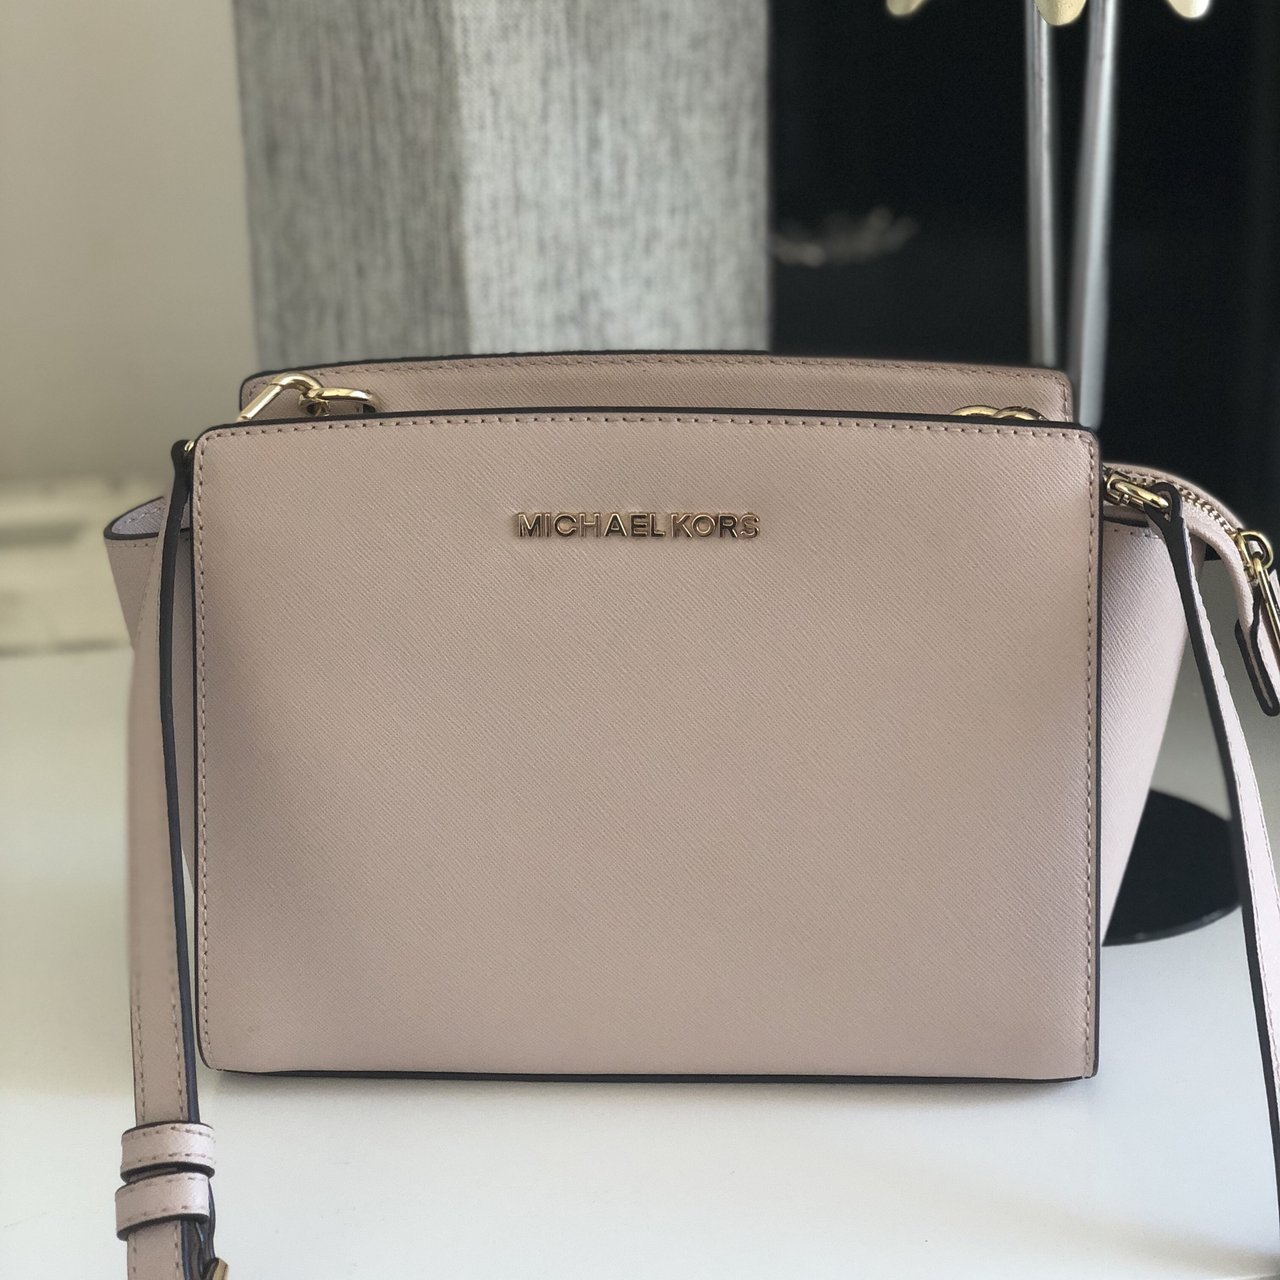 fcada0c6f590 Michael kors Ss18 Cost £250 Only used once for a hole in - Depop